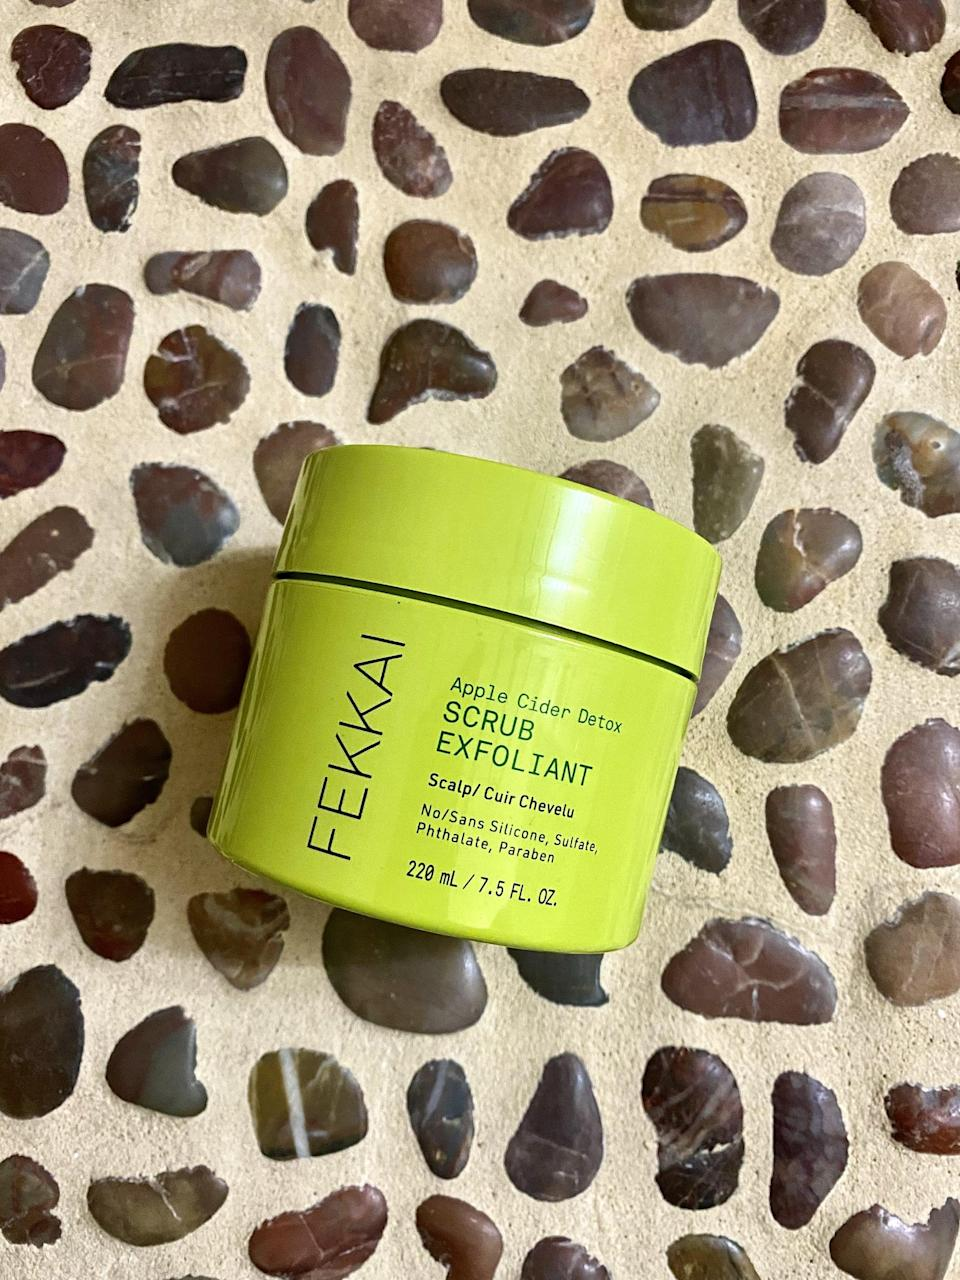 <p>The <span>Fekkai Apple Cider Detox Scrub</span> ($30) definitely worked its magic in removing excess oil, flakes, and product build-up without stripping the scalp or over-drying my roots. The physical exfoliators were quite gentle and didn't scratch or feel abrasive on my scalp. After blow-drying my hair, I noticed that my roots were lifted and had volume and my scalp felt nourished yet weightless. It felt clean and balanced but not at all stripped and dried out. </p> <p>Although the immediate results were amazing, what really surprised me was that I was able to prolong washing my hair an extra day or two. Usually, by the time I reach the latter half of the second day going into third-day hair, I start to notice more oil production, dry flakes at my roots, and my scalp starts to feel irritated. With the scrub, my scalp and roots looked more presentable during my third to the fourth day. It was not overly oily or flaky, and it didn't feel irritated at all.</p>